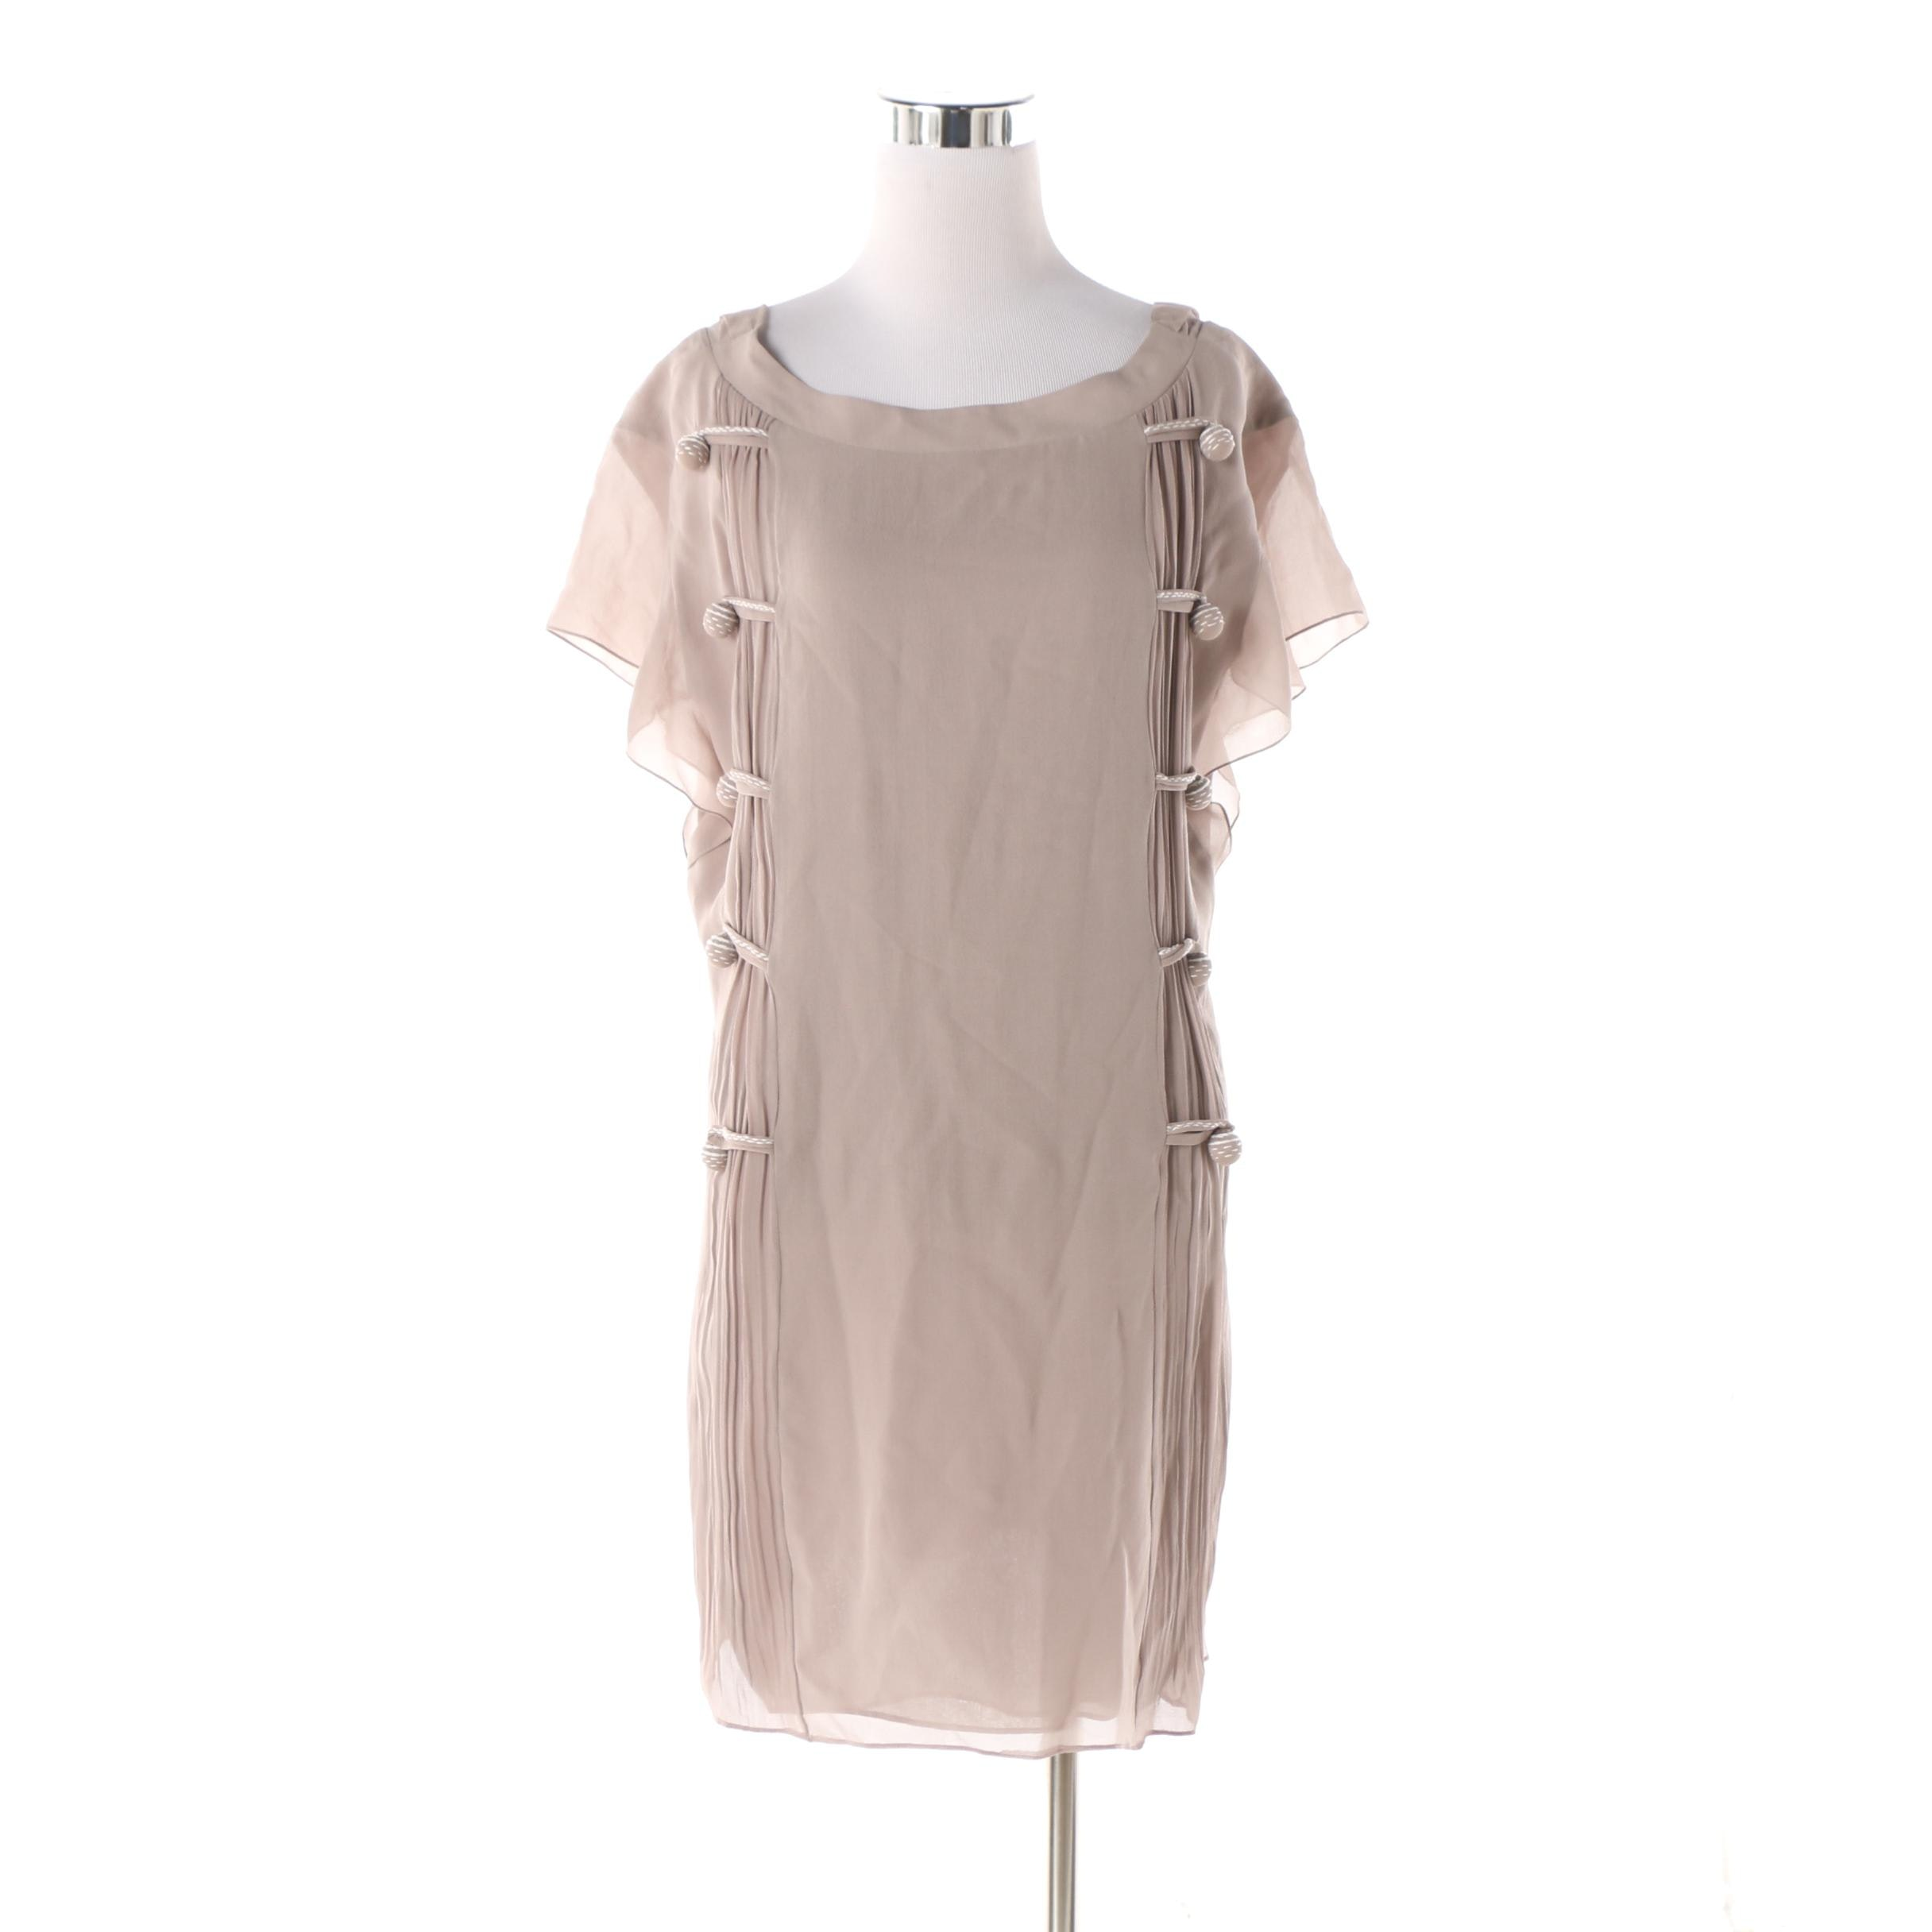 Nina Ricci Greige Crepe Tunic Dress